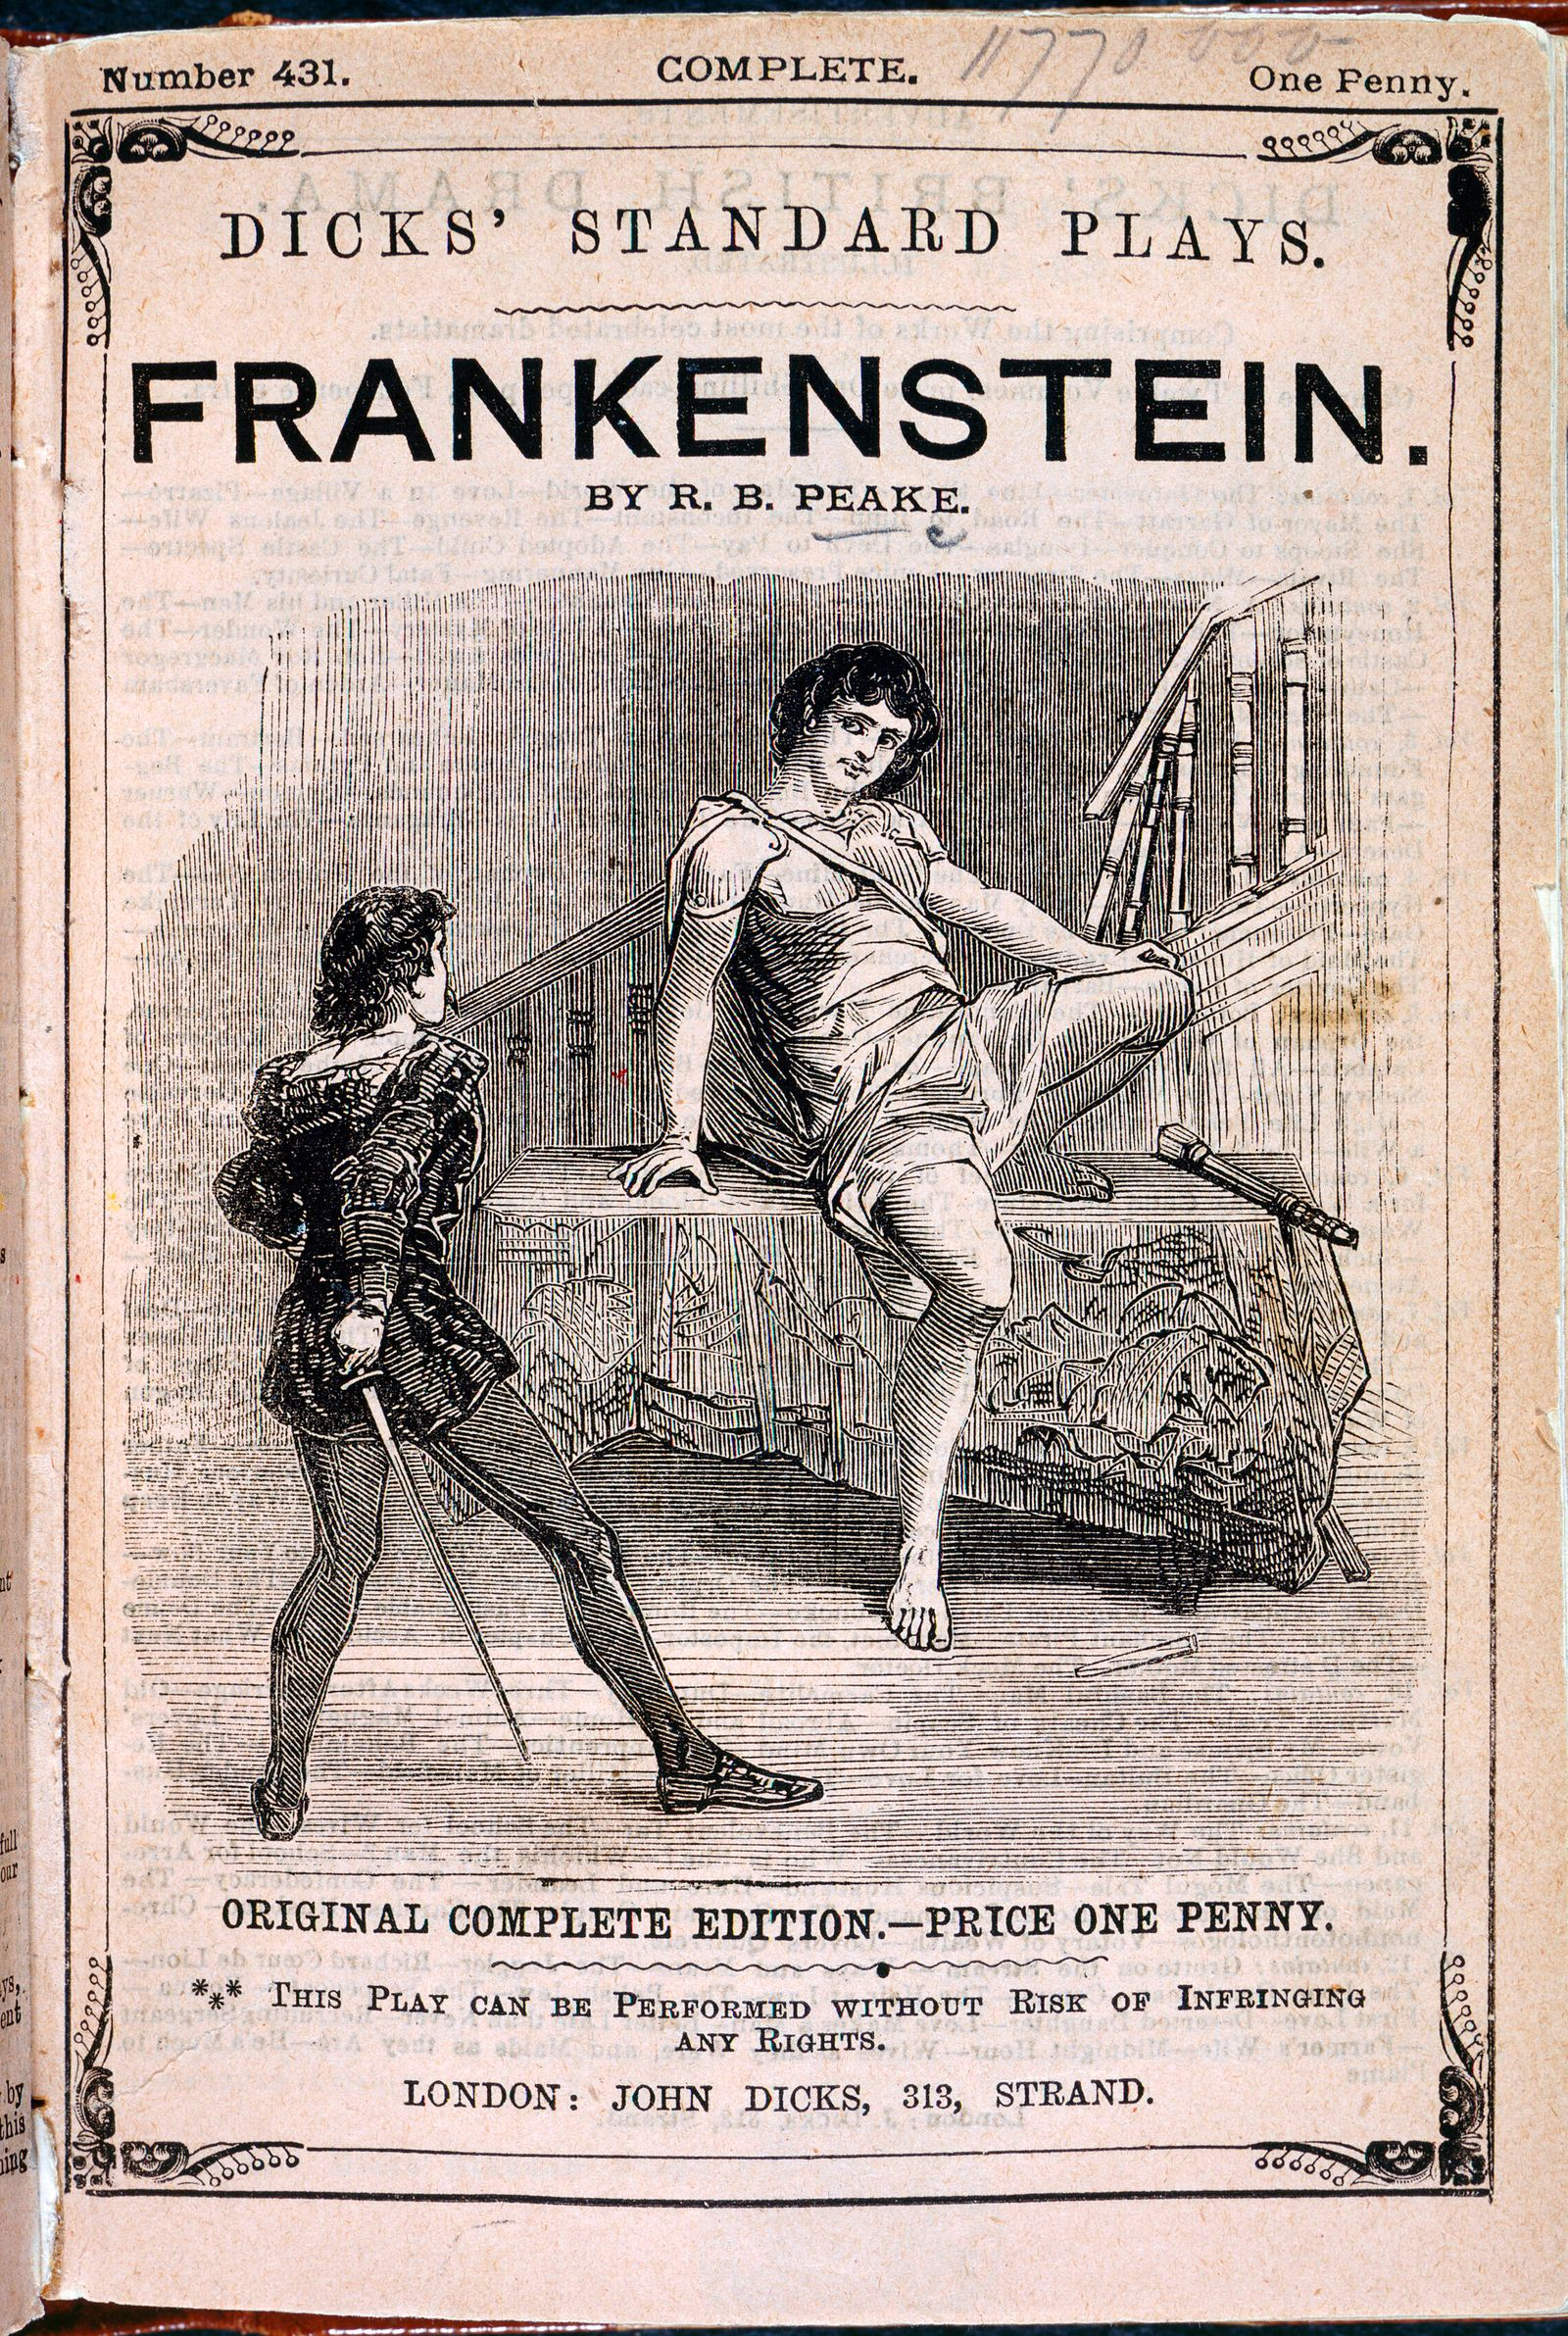 FRANKENSTEIN Couverture d une publication reprenant en piece de theatre le fameux roman de Mary SHELLEY FRANKENSTEIN, au